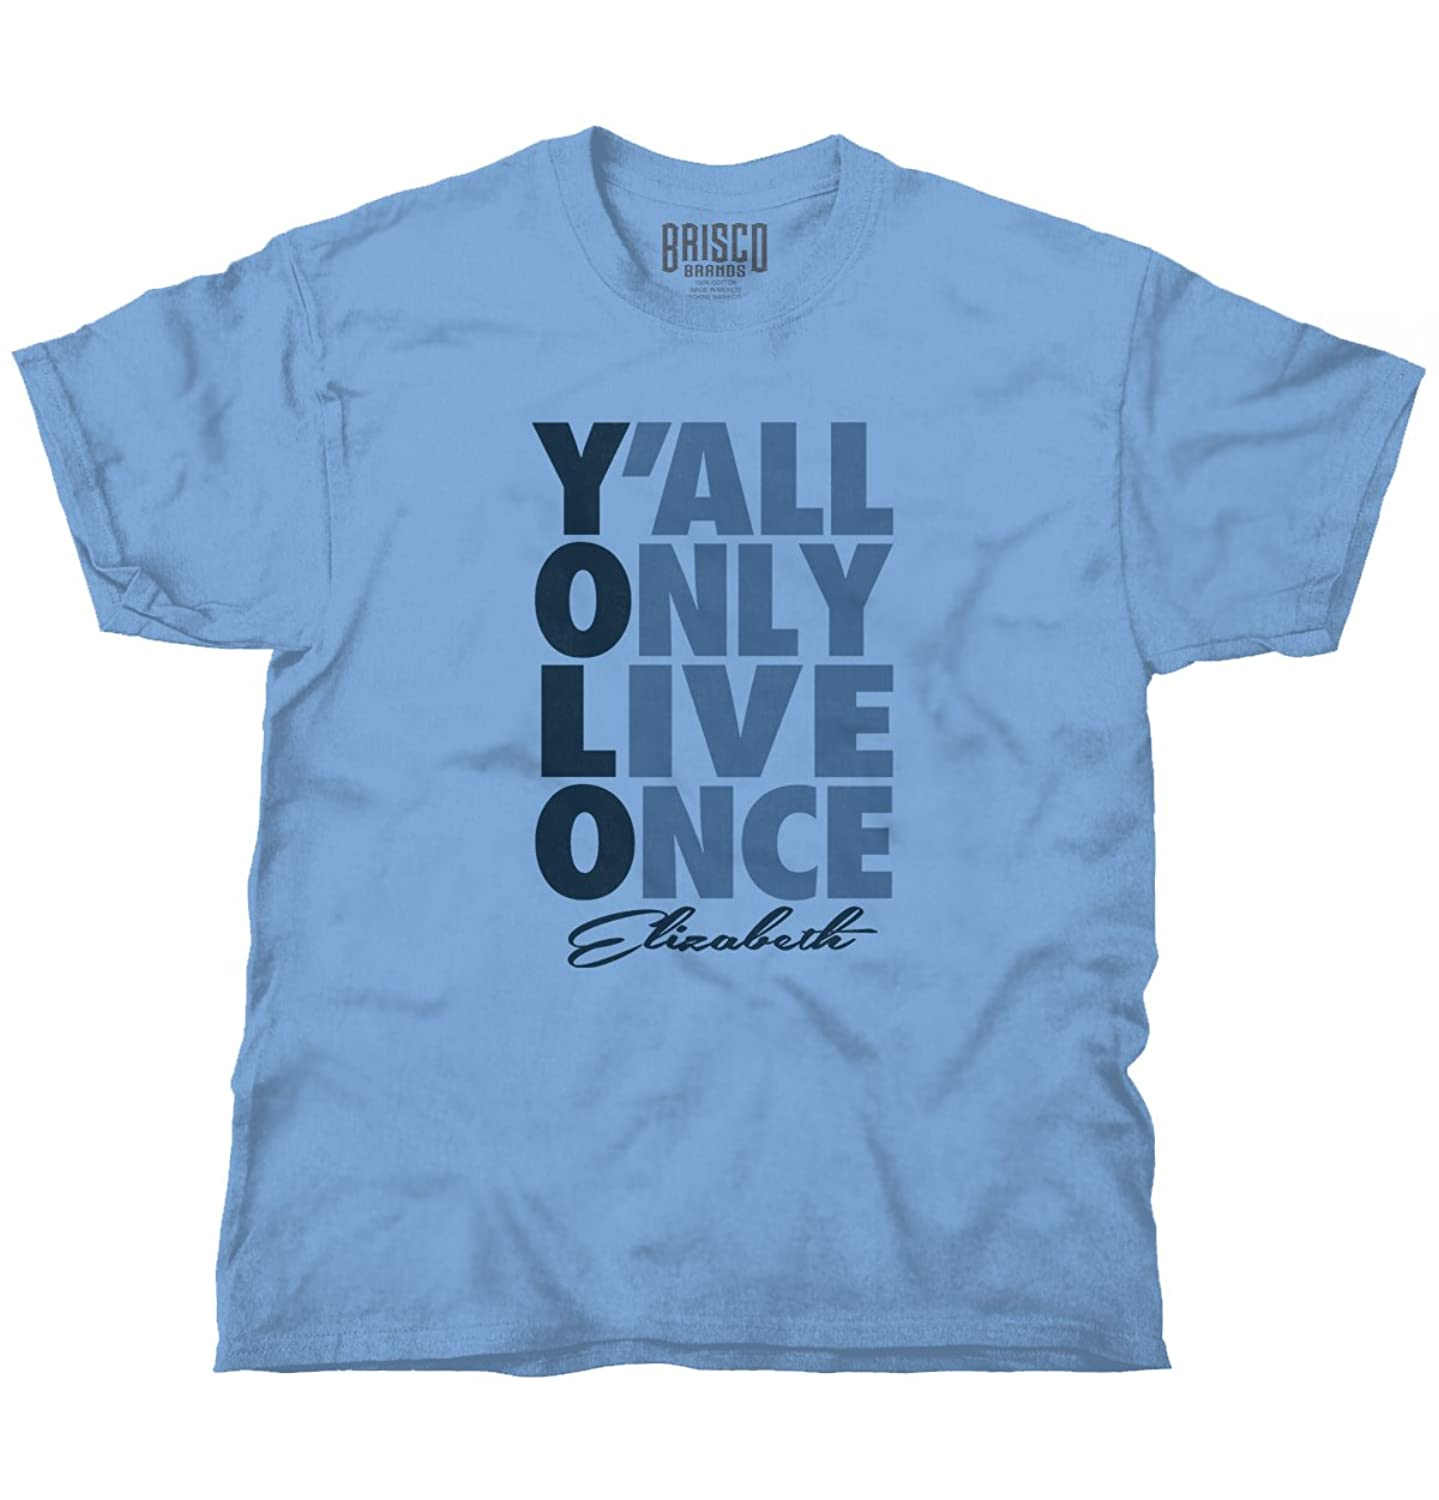 YOLO You Only Live Once Elizabeth, NJ Gift Funny Picture Shirt T Shirt Tee